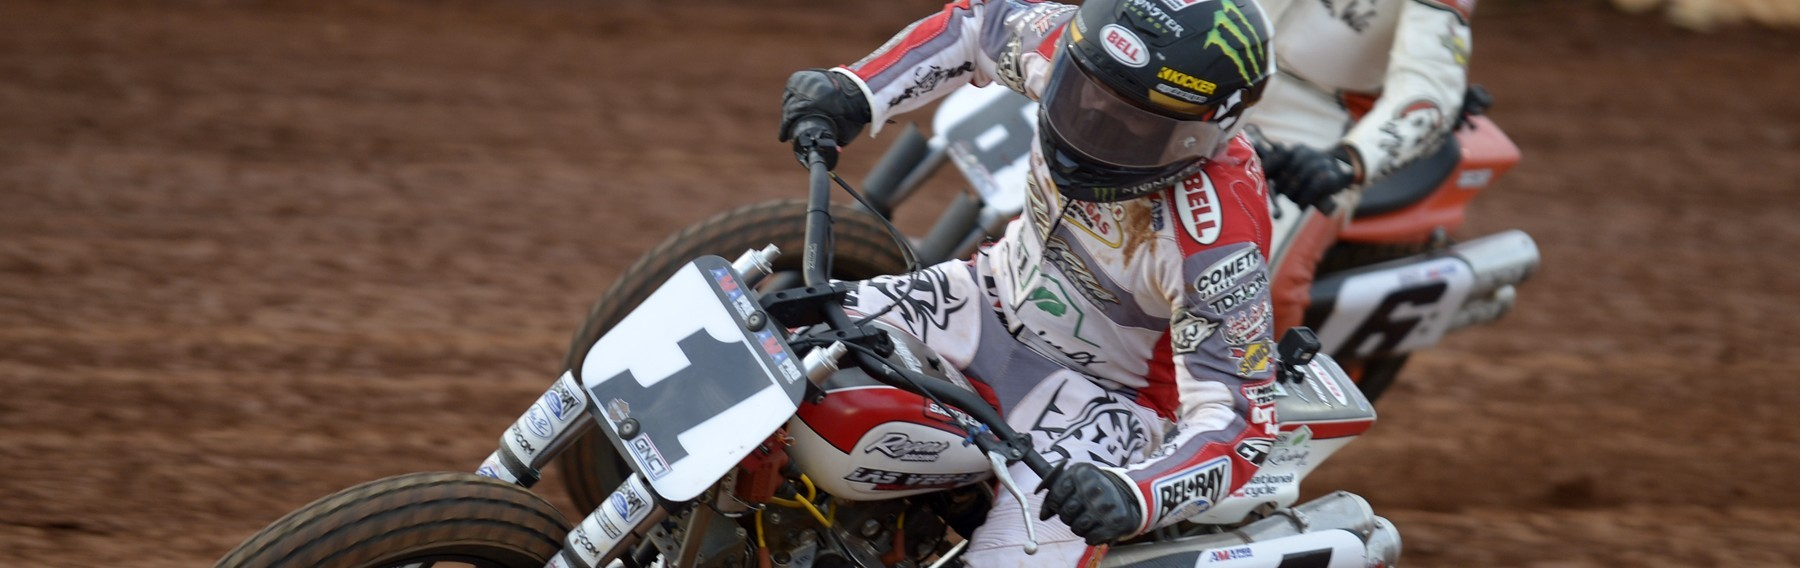 Jared Mees during the 2016 AMA Pro Grand National Flat Track in The Dirt Track at Charlotte, North Carolina